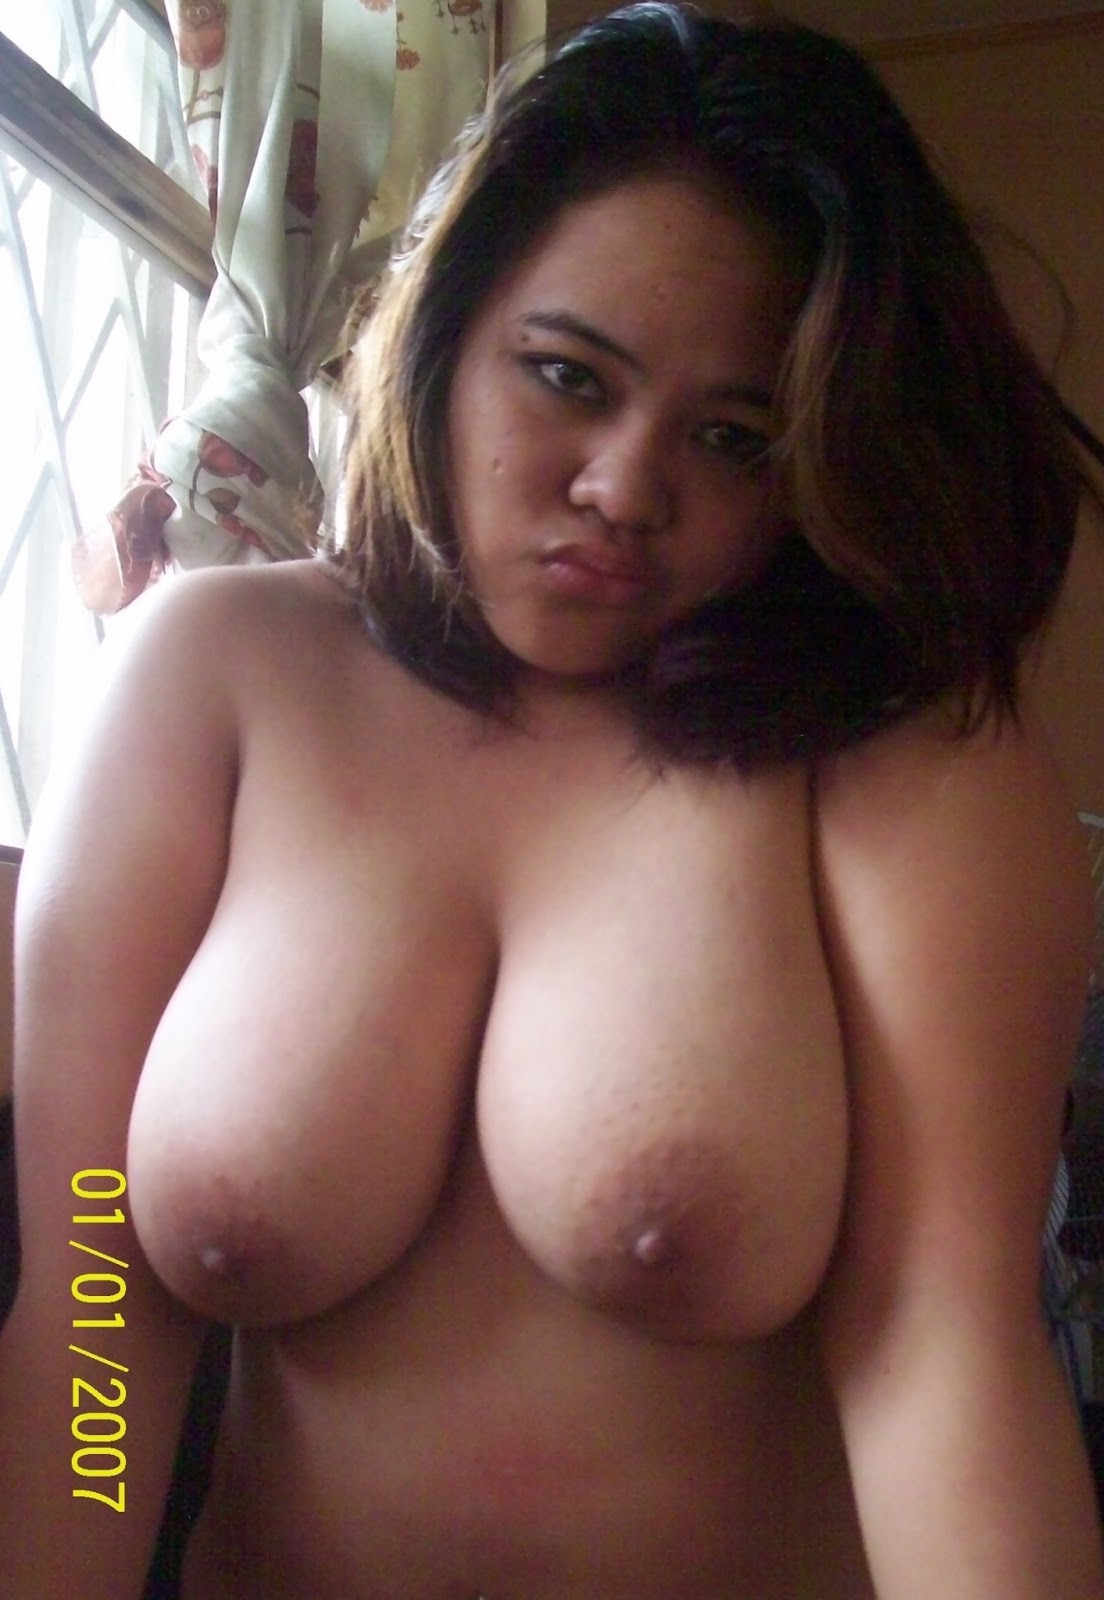 Necessary Malay babes nude photo understand you